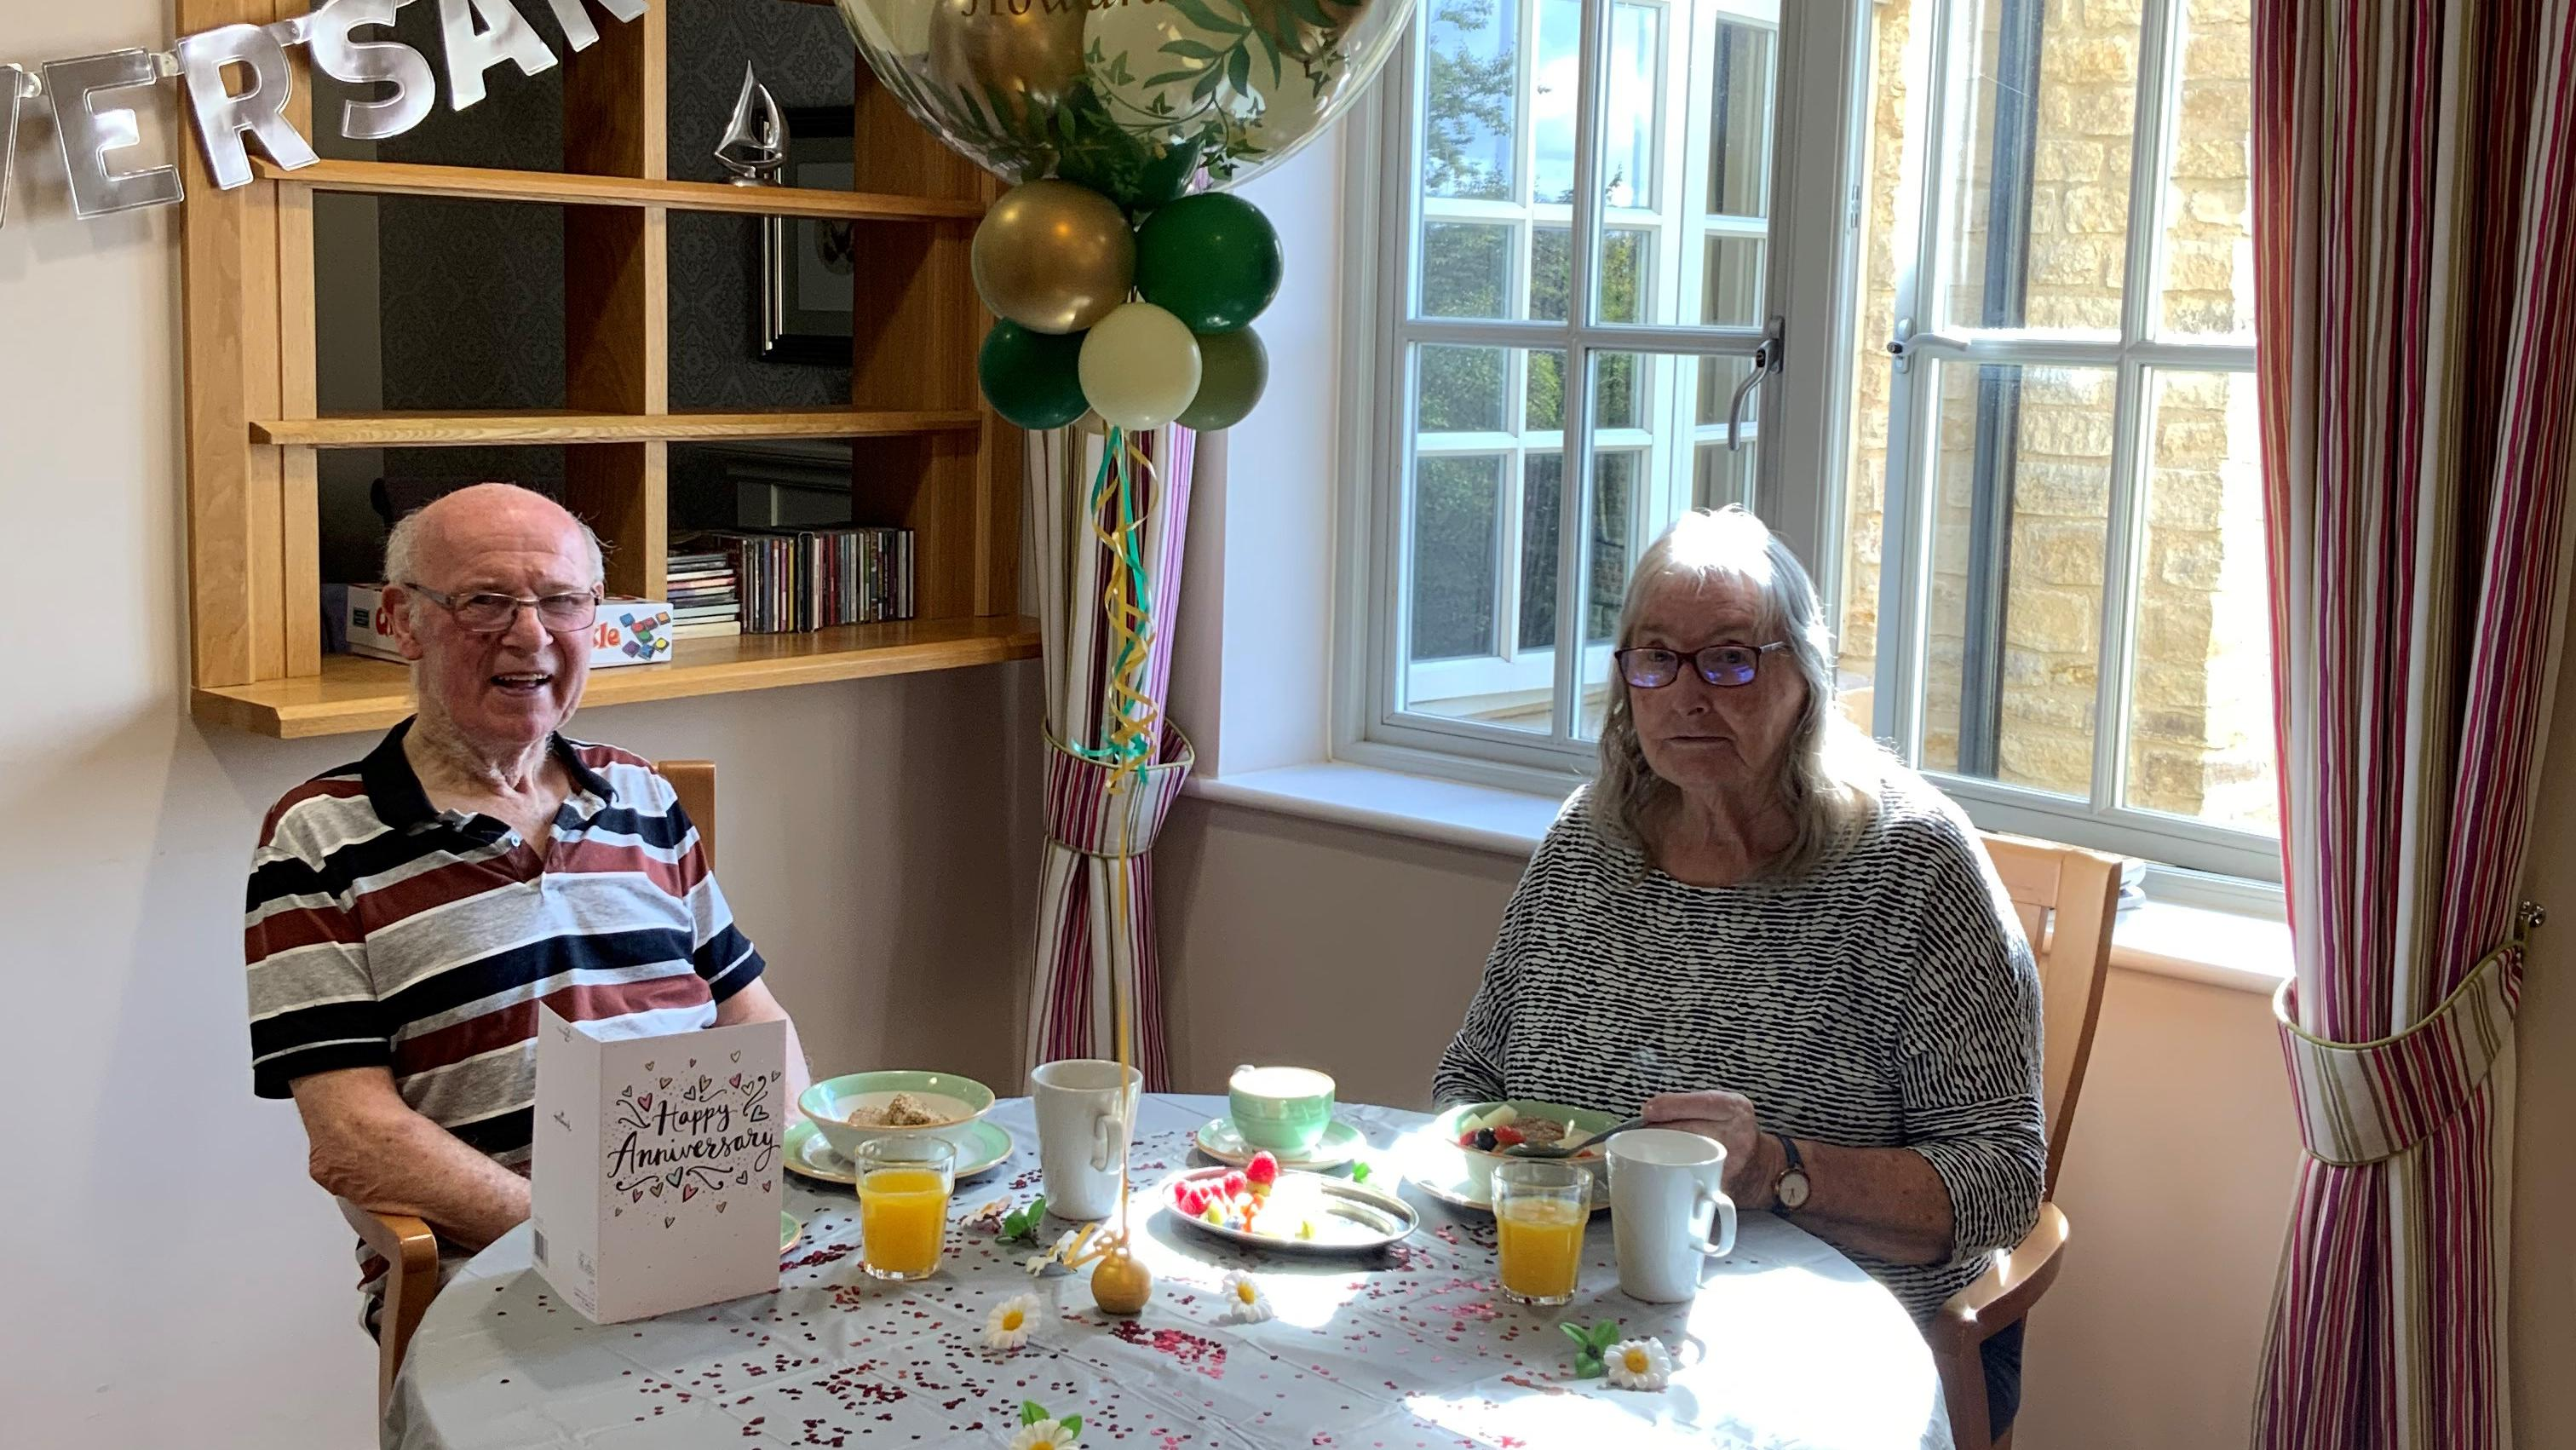 64 years married